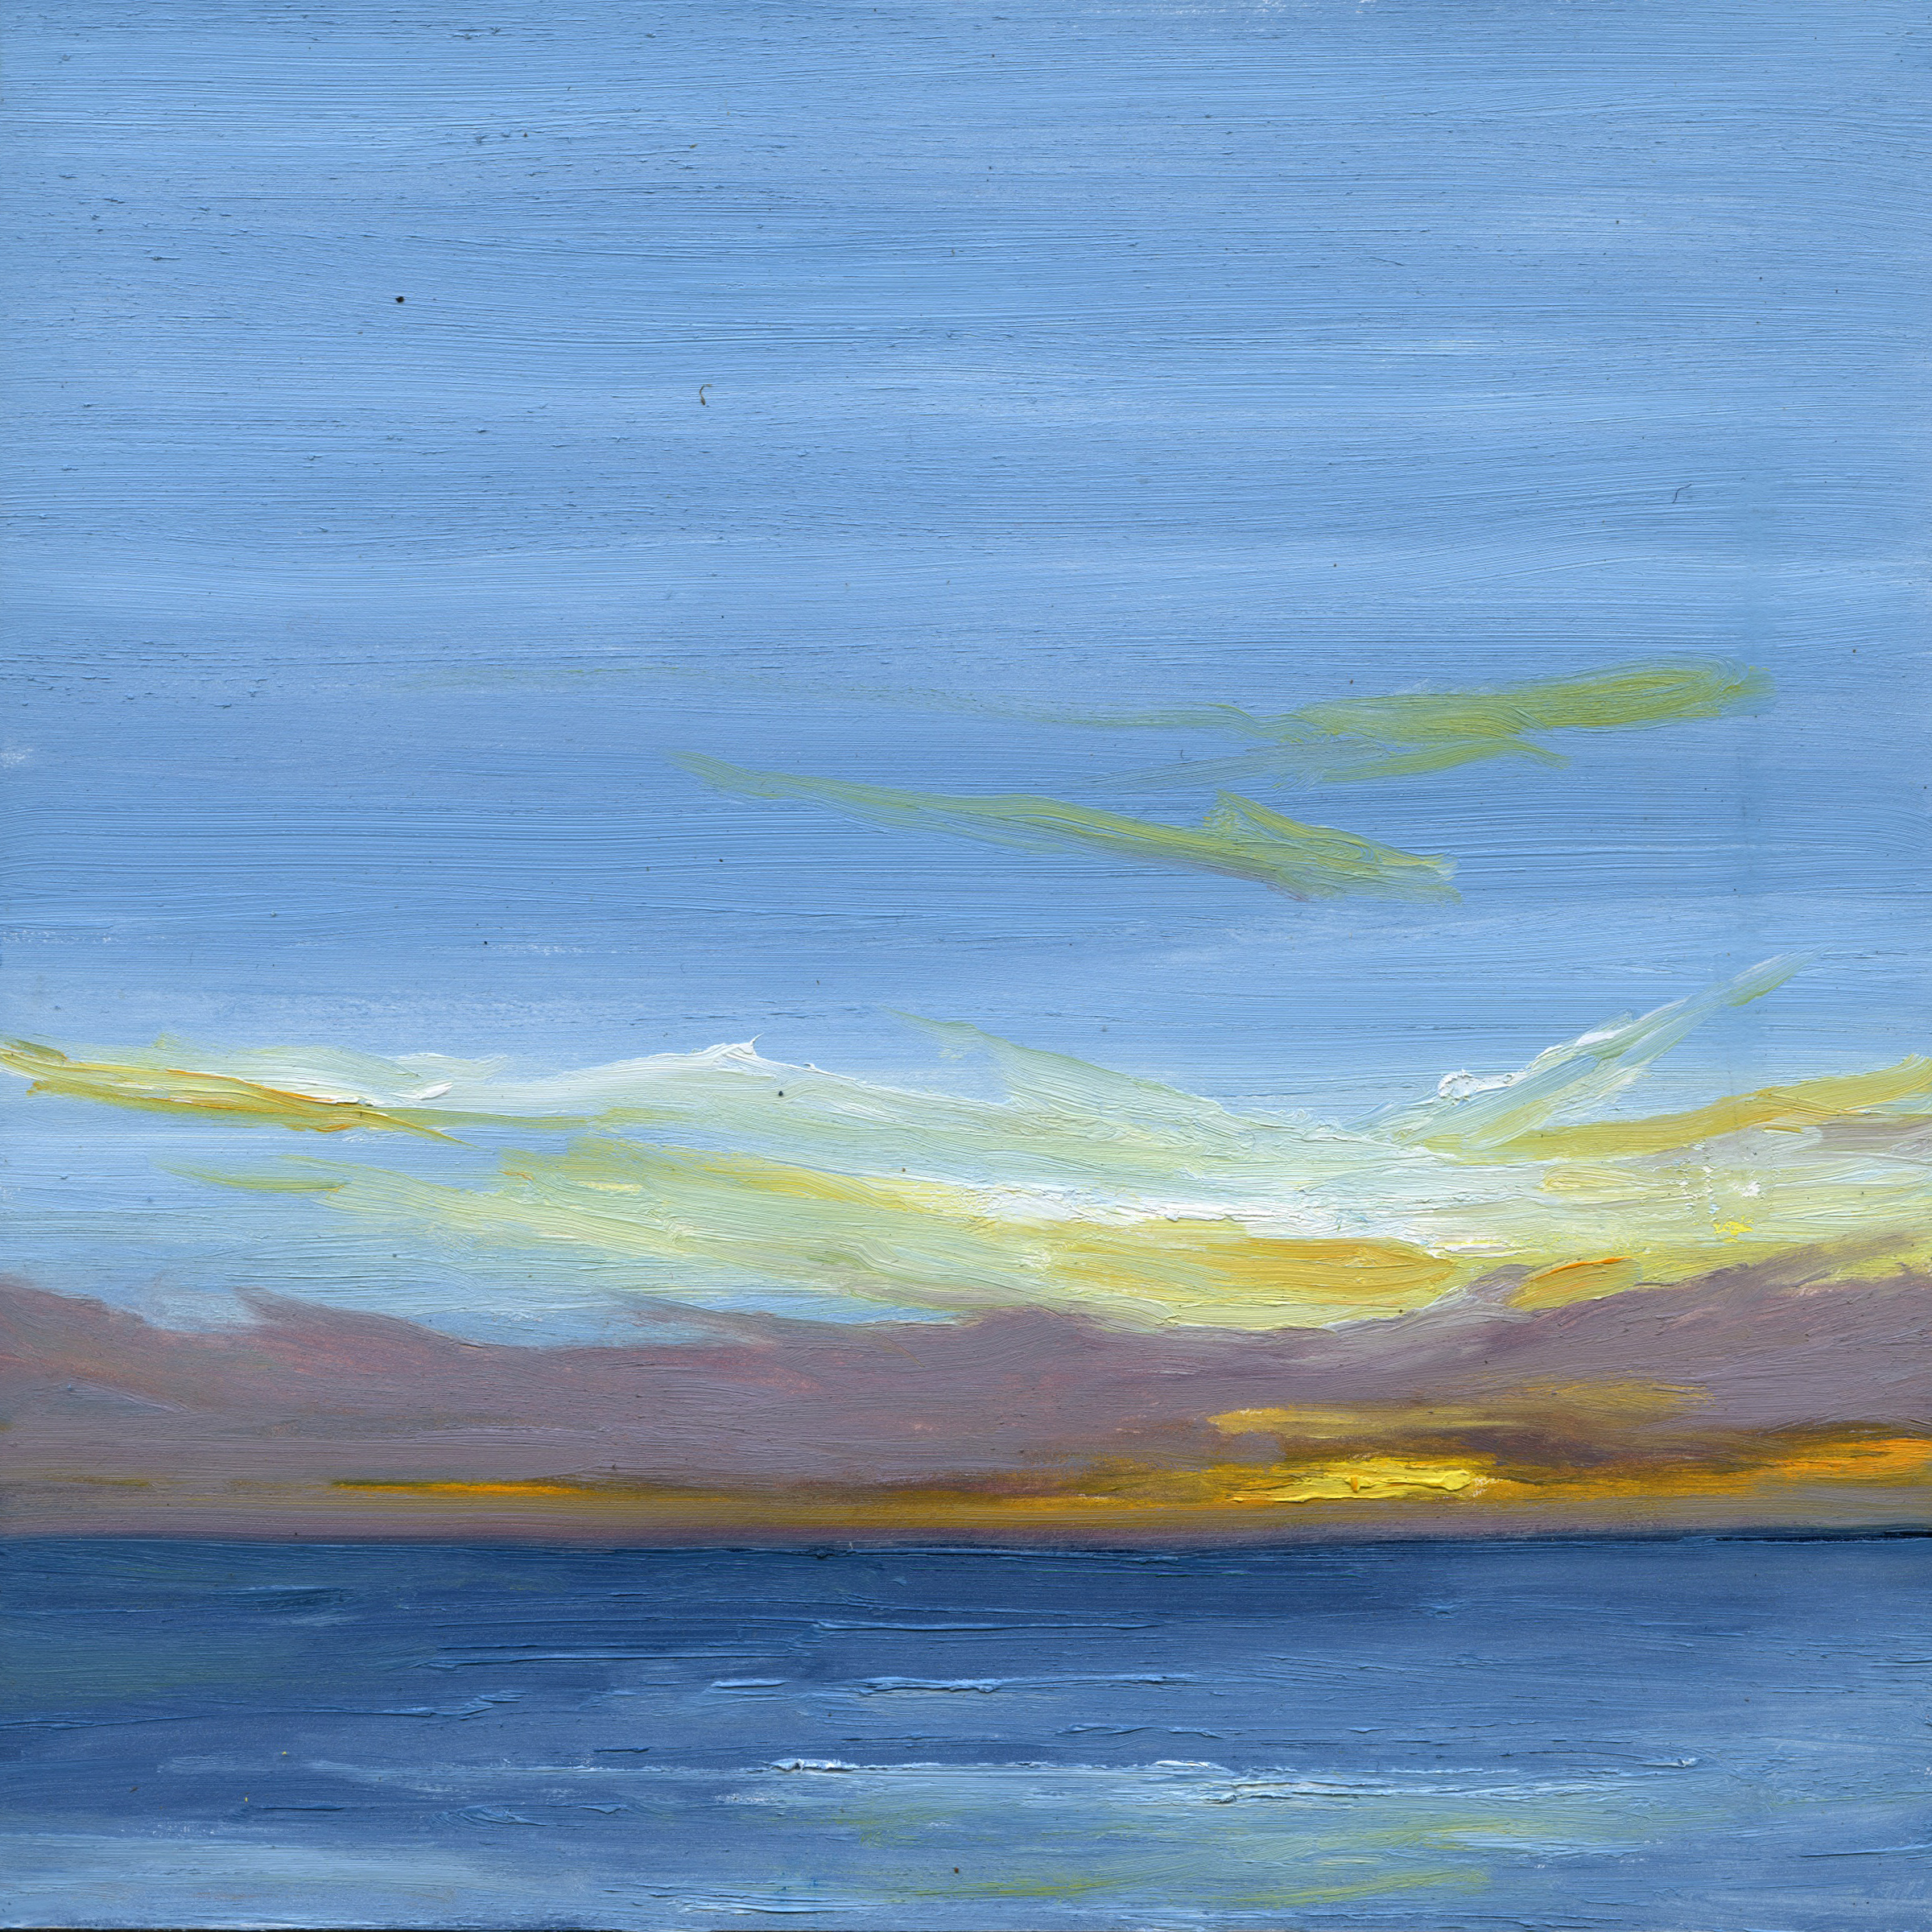 At The Horizon - Wellfleet Looking To Provincetown, oil on board, 8 by 8 inches, 2015, $1000